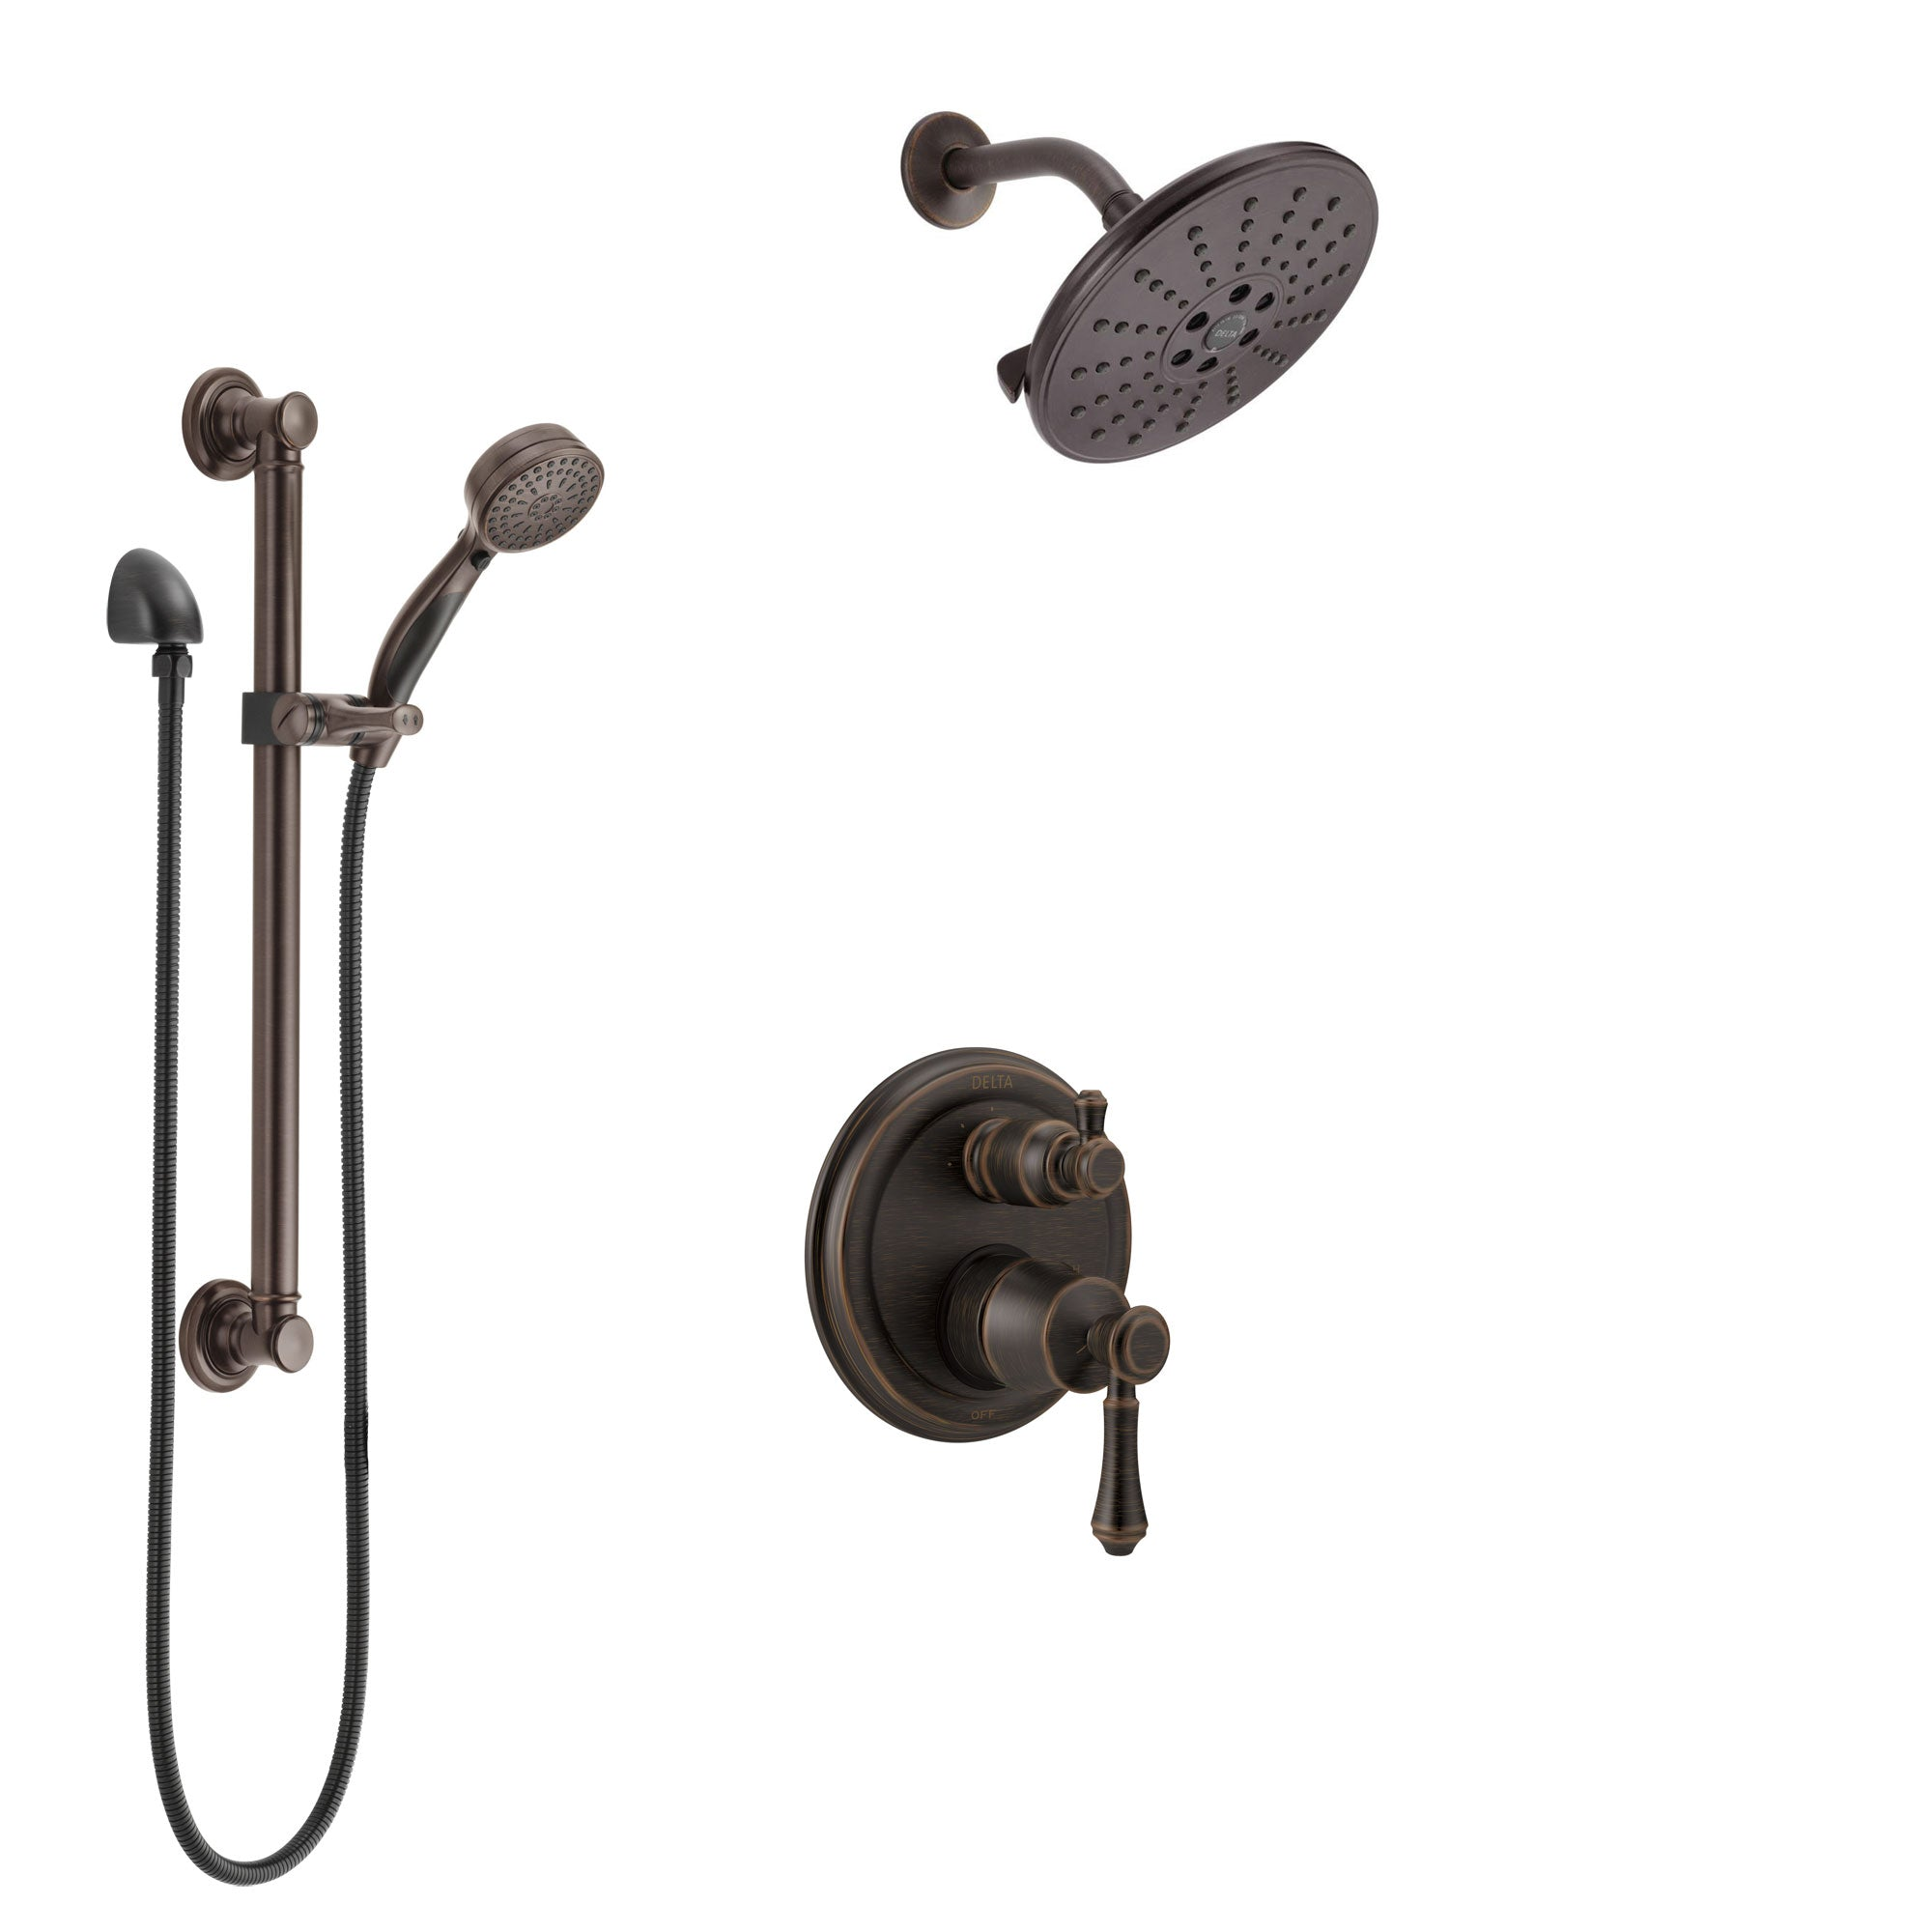 Delta Cassidy Venetian Bronze Shower System with Control Handle, Integrated 3-Setting Diverter, Showerhead, and Hand Shower with Grab Bar SS24897RB11